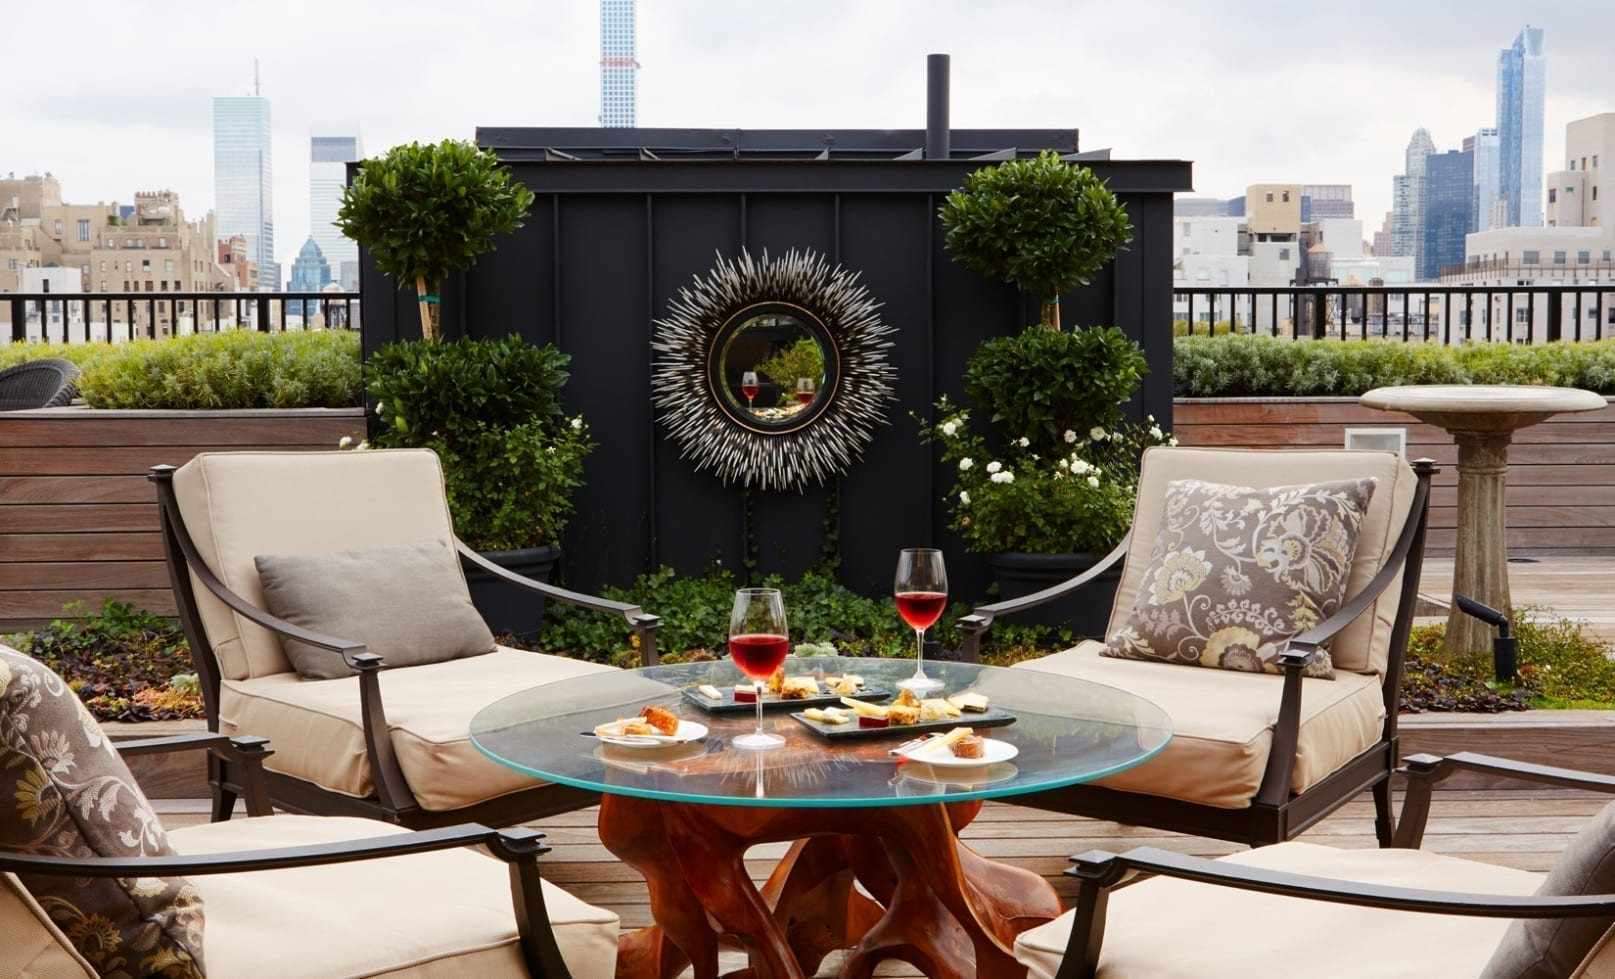 A round table set up for a wine brunch, outside on The Surrey Hotel's private roof garden. Two rectangle cheese places are placed on the glass table, with twin glasses filled with red wine.